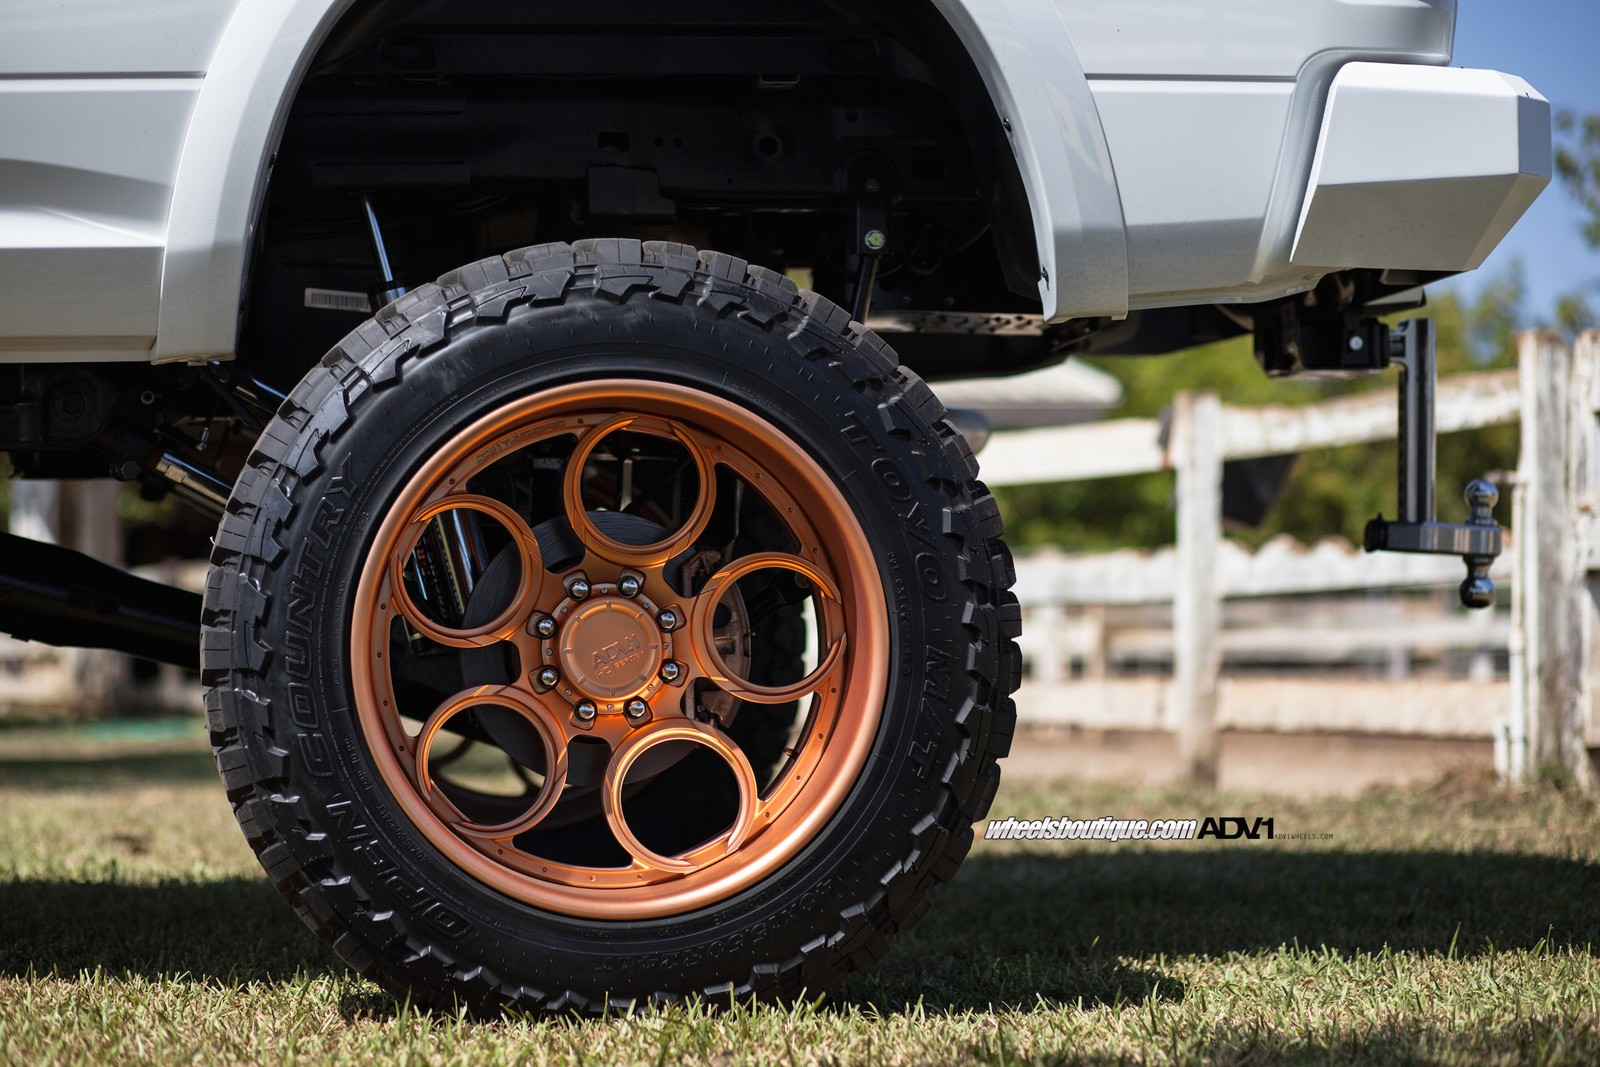 Chevy Lifted Trucks >> Lifted Ram 2500 On Rose Gold Wheels Meets a Horse ...